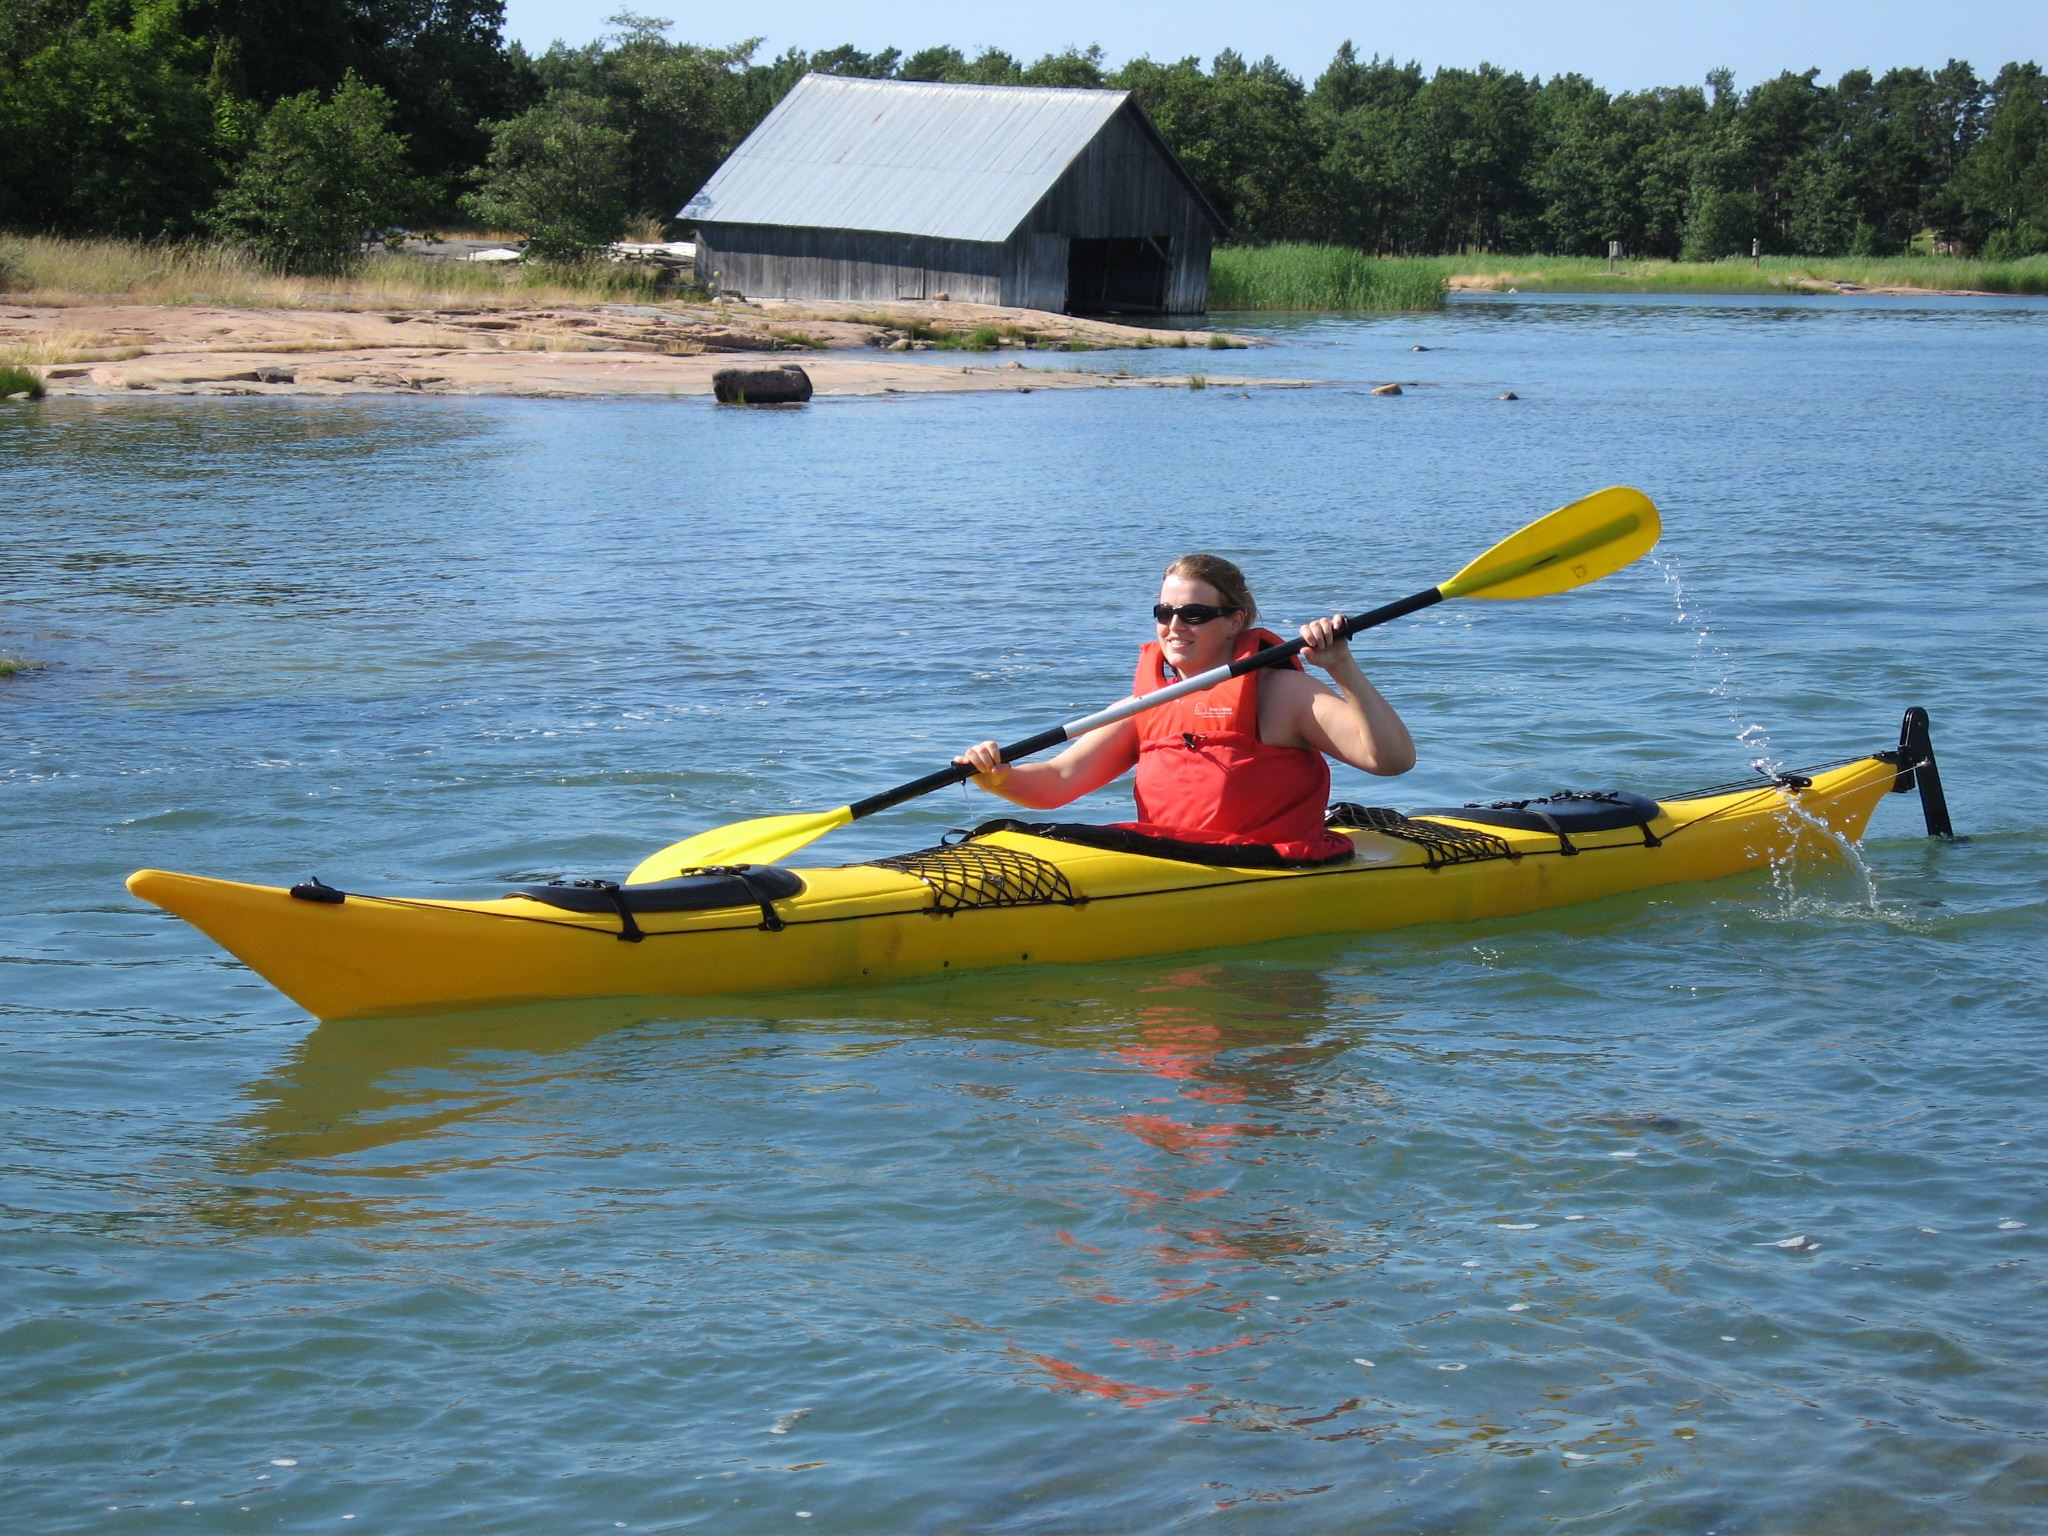 Nimix kayak rentals single kayaks, 2-3 hours